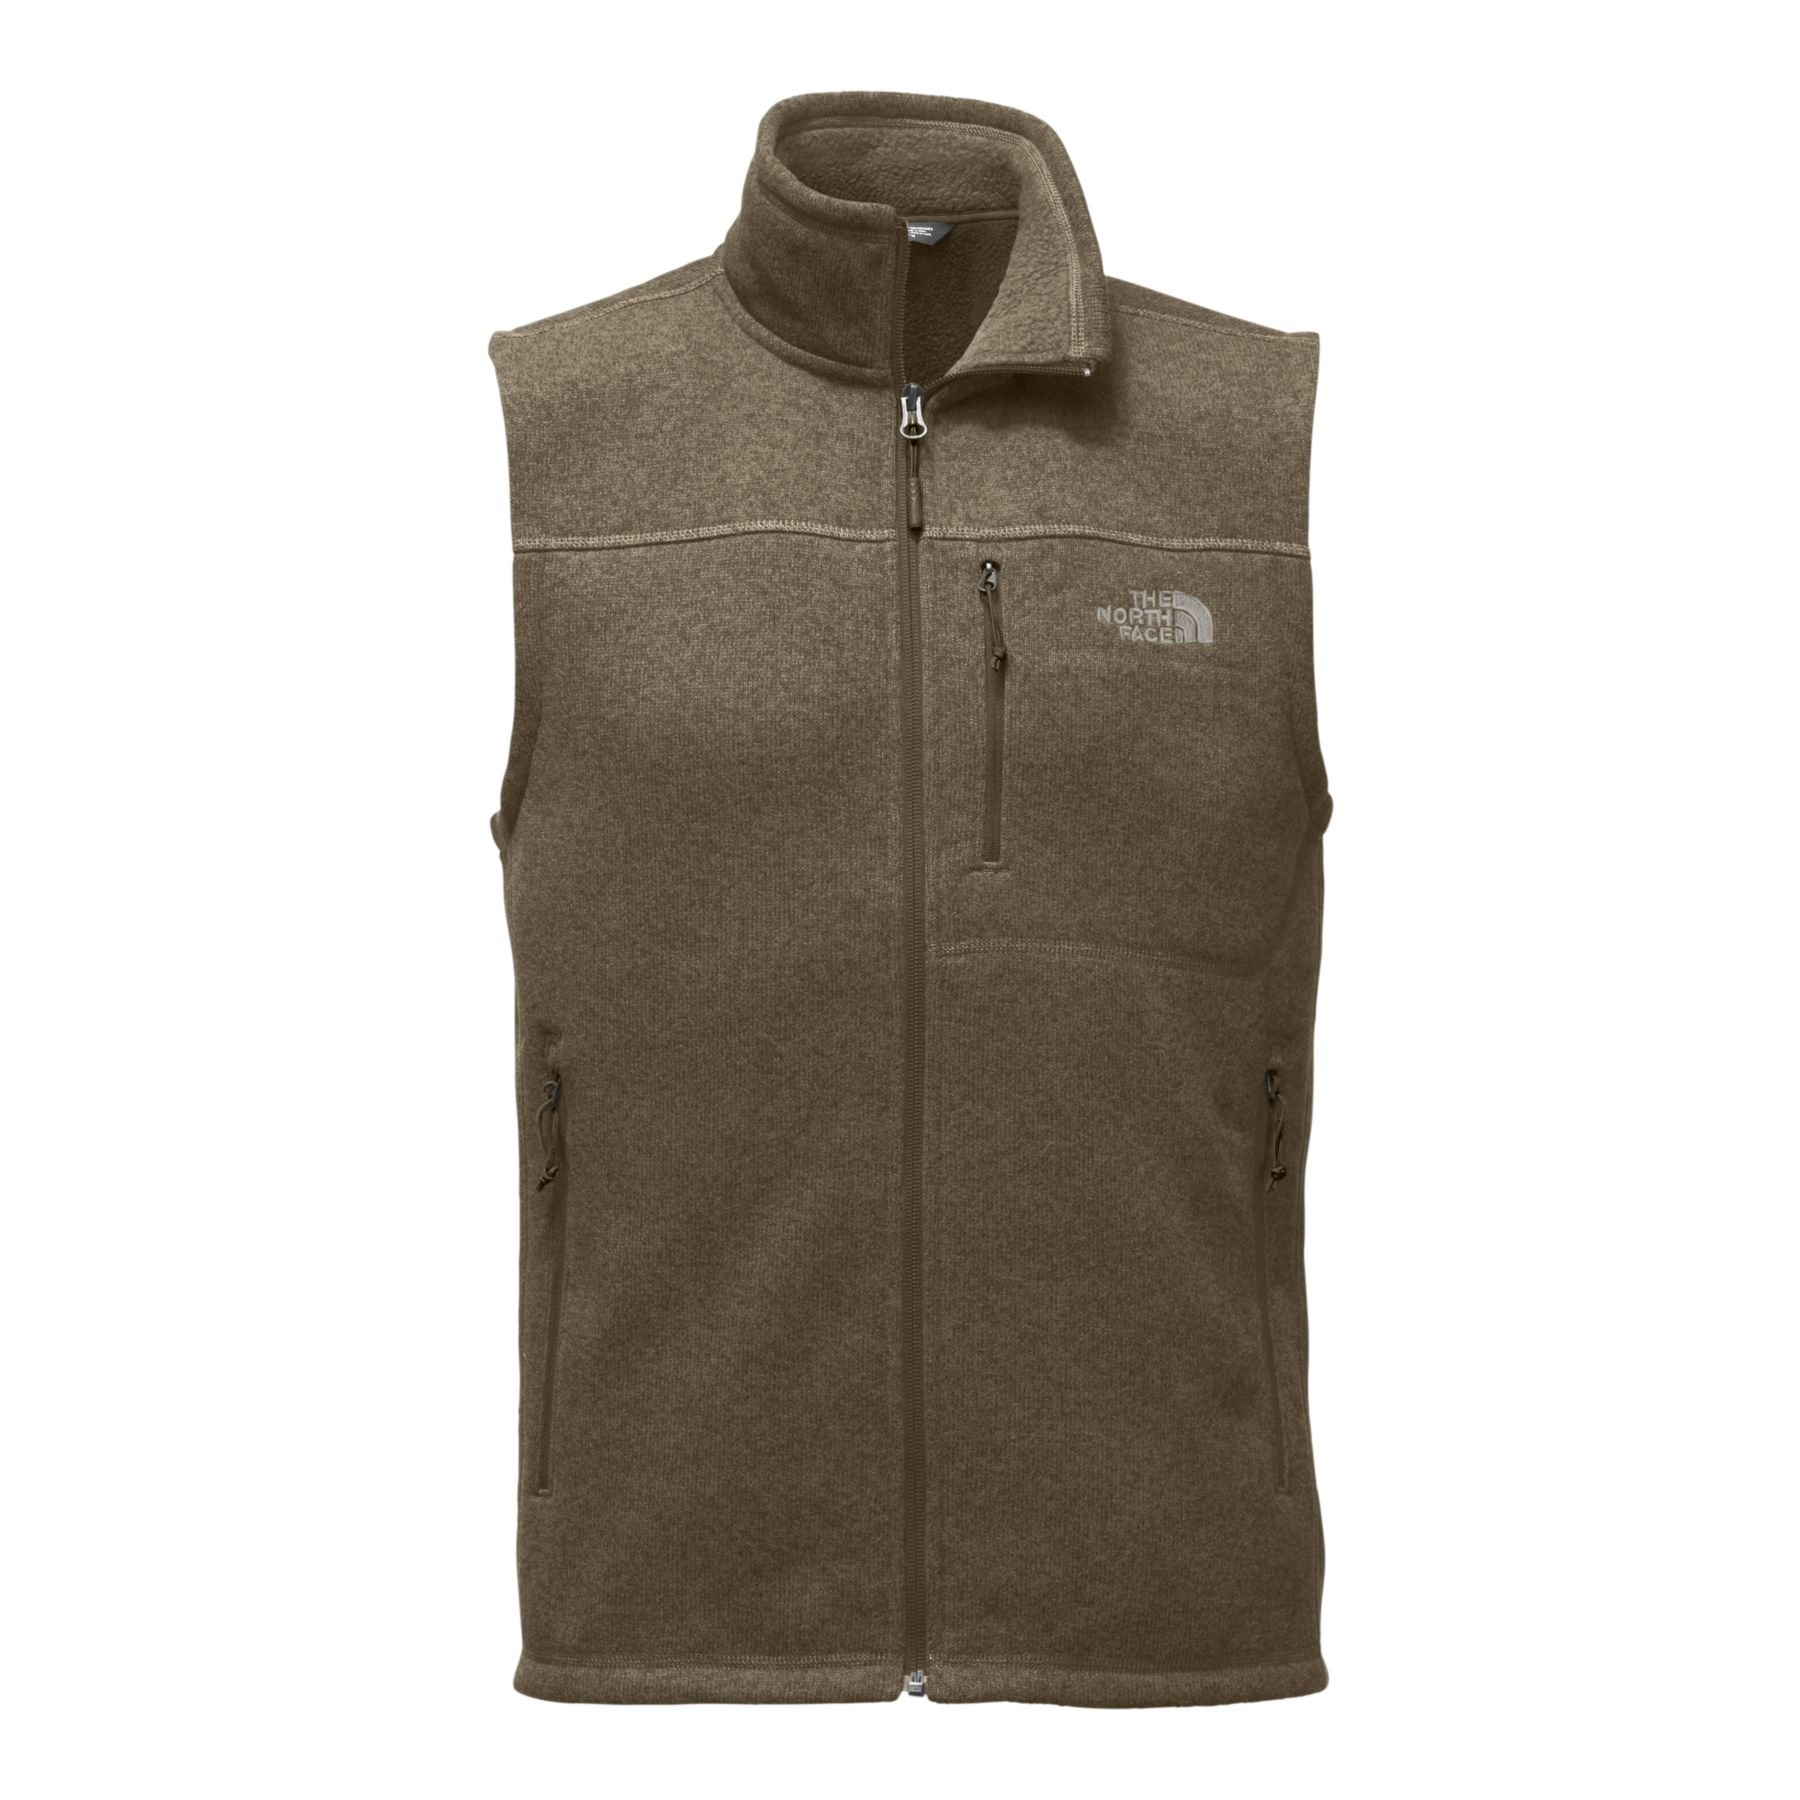 The North Face Men's Gordon Lyons Vest - Beech Green Heather - L by The North Face